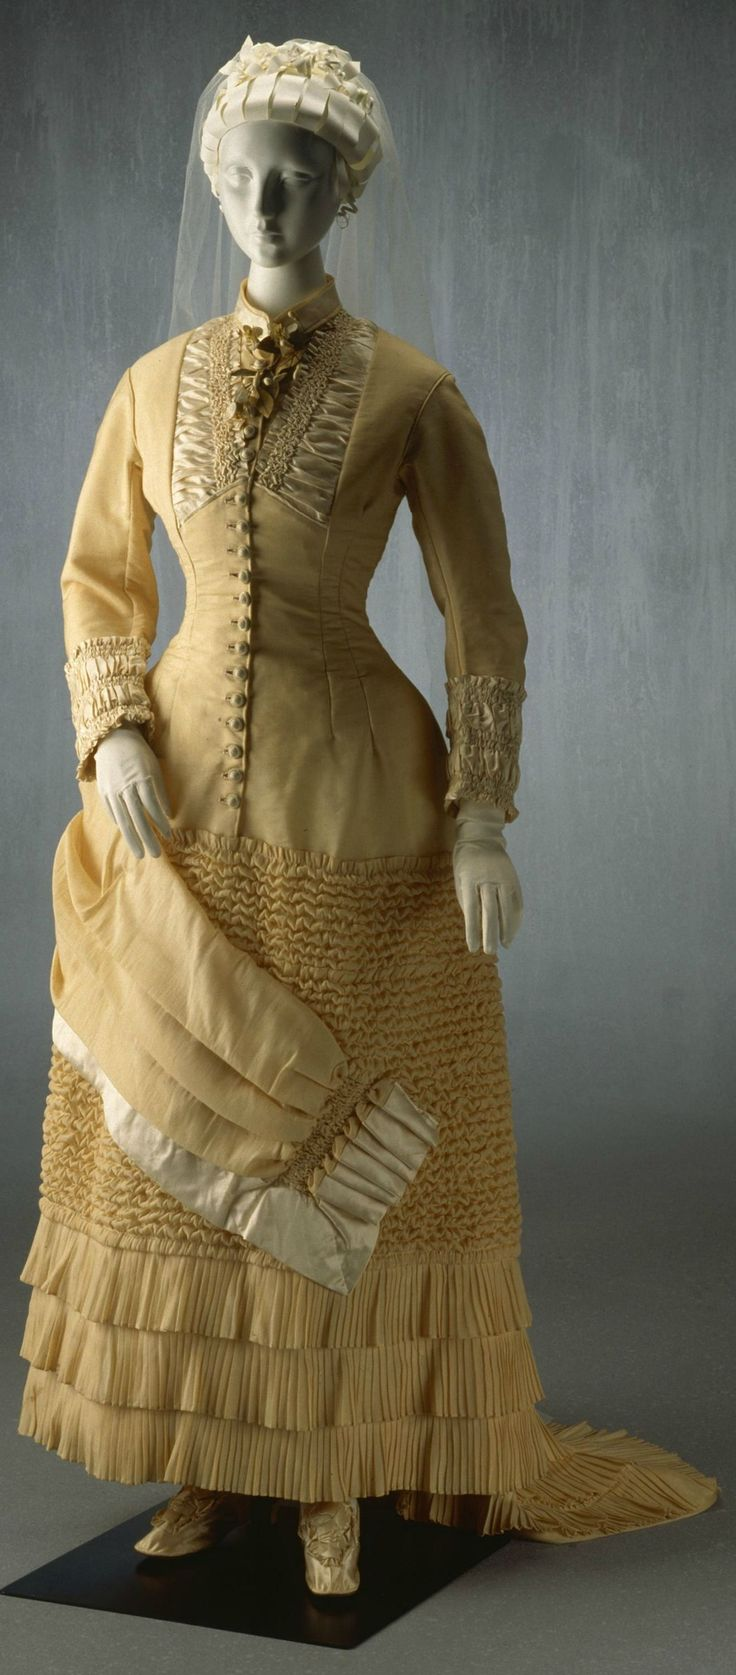 "Wedding Dress: 1882, wool, silk, cotton. ""This dress was worn by Hannah Palser Prior for her marriage to Alfred Matthew Adlam at the Holy Trinity Church, Kelso, near Bathurst on 16 August 1882. The dress is remarkably elaborate for a simple country wedding. Its complicated cut and construction, with slim-fitting bodice and detailed trimmings, suggests the work of a professional dressmaker."""